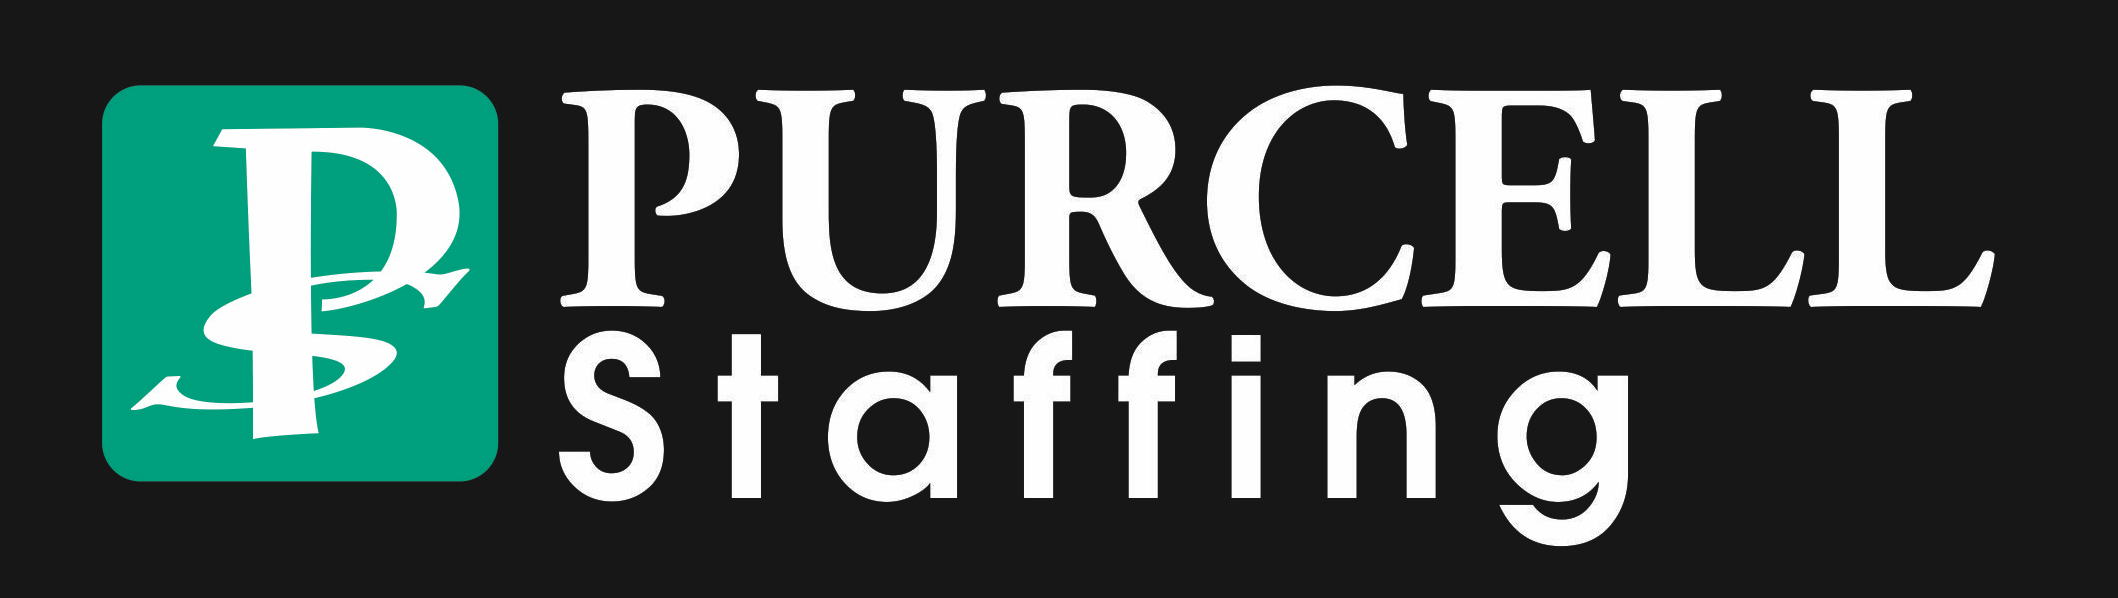 Purcell Staffing